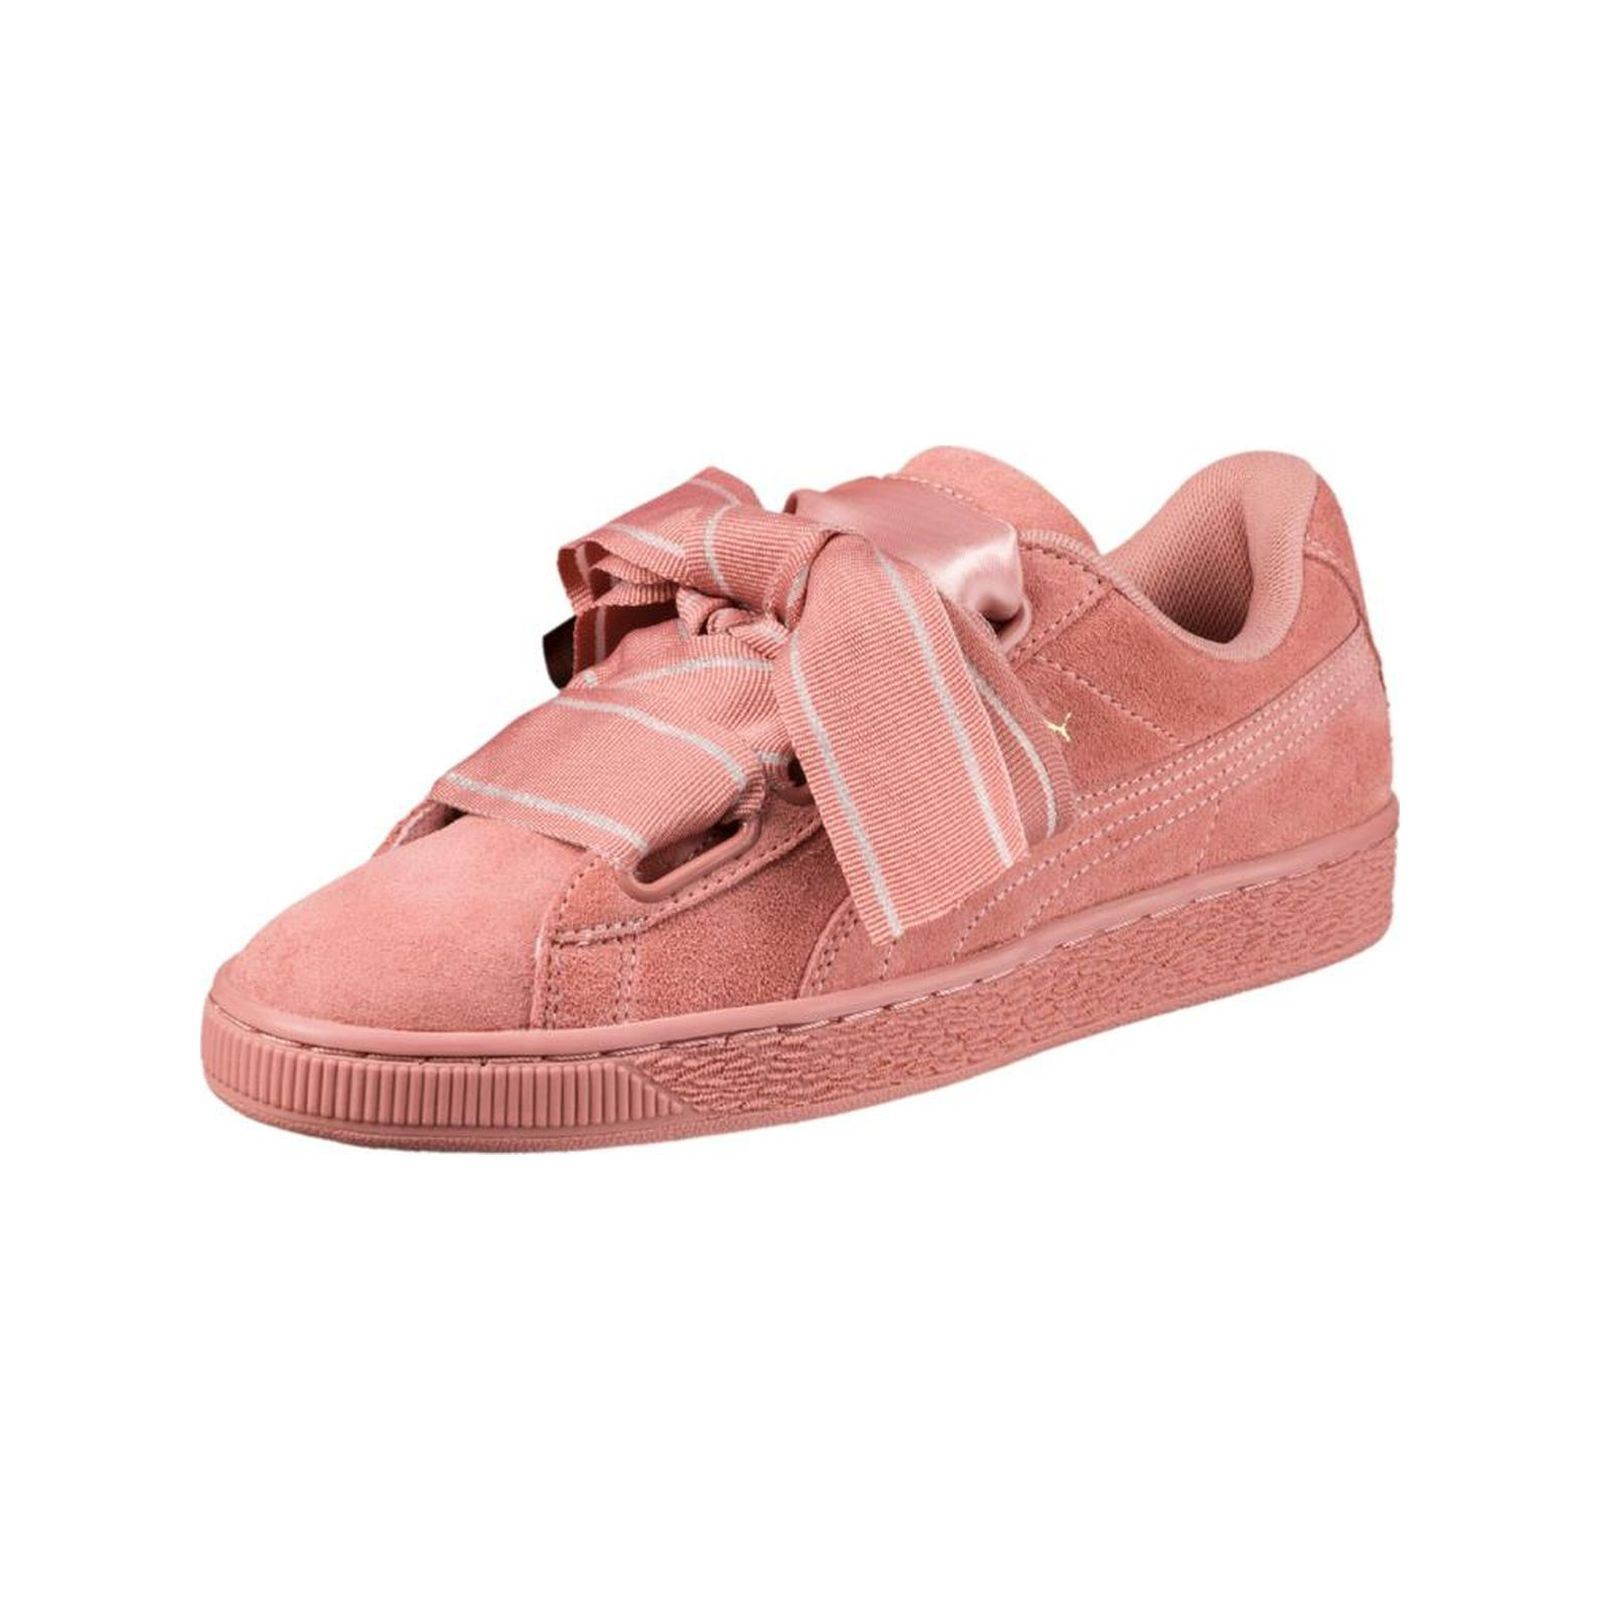 9f97d094efc5e8 Puma Heart satin ll - Baskets en cuir - rose Baskets GH8HUA1Z -  destrainspourtous.fr